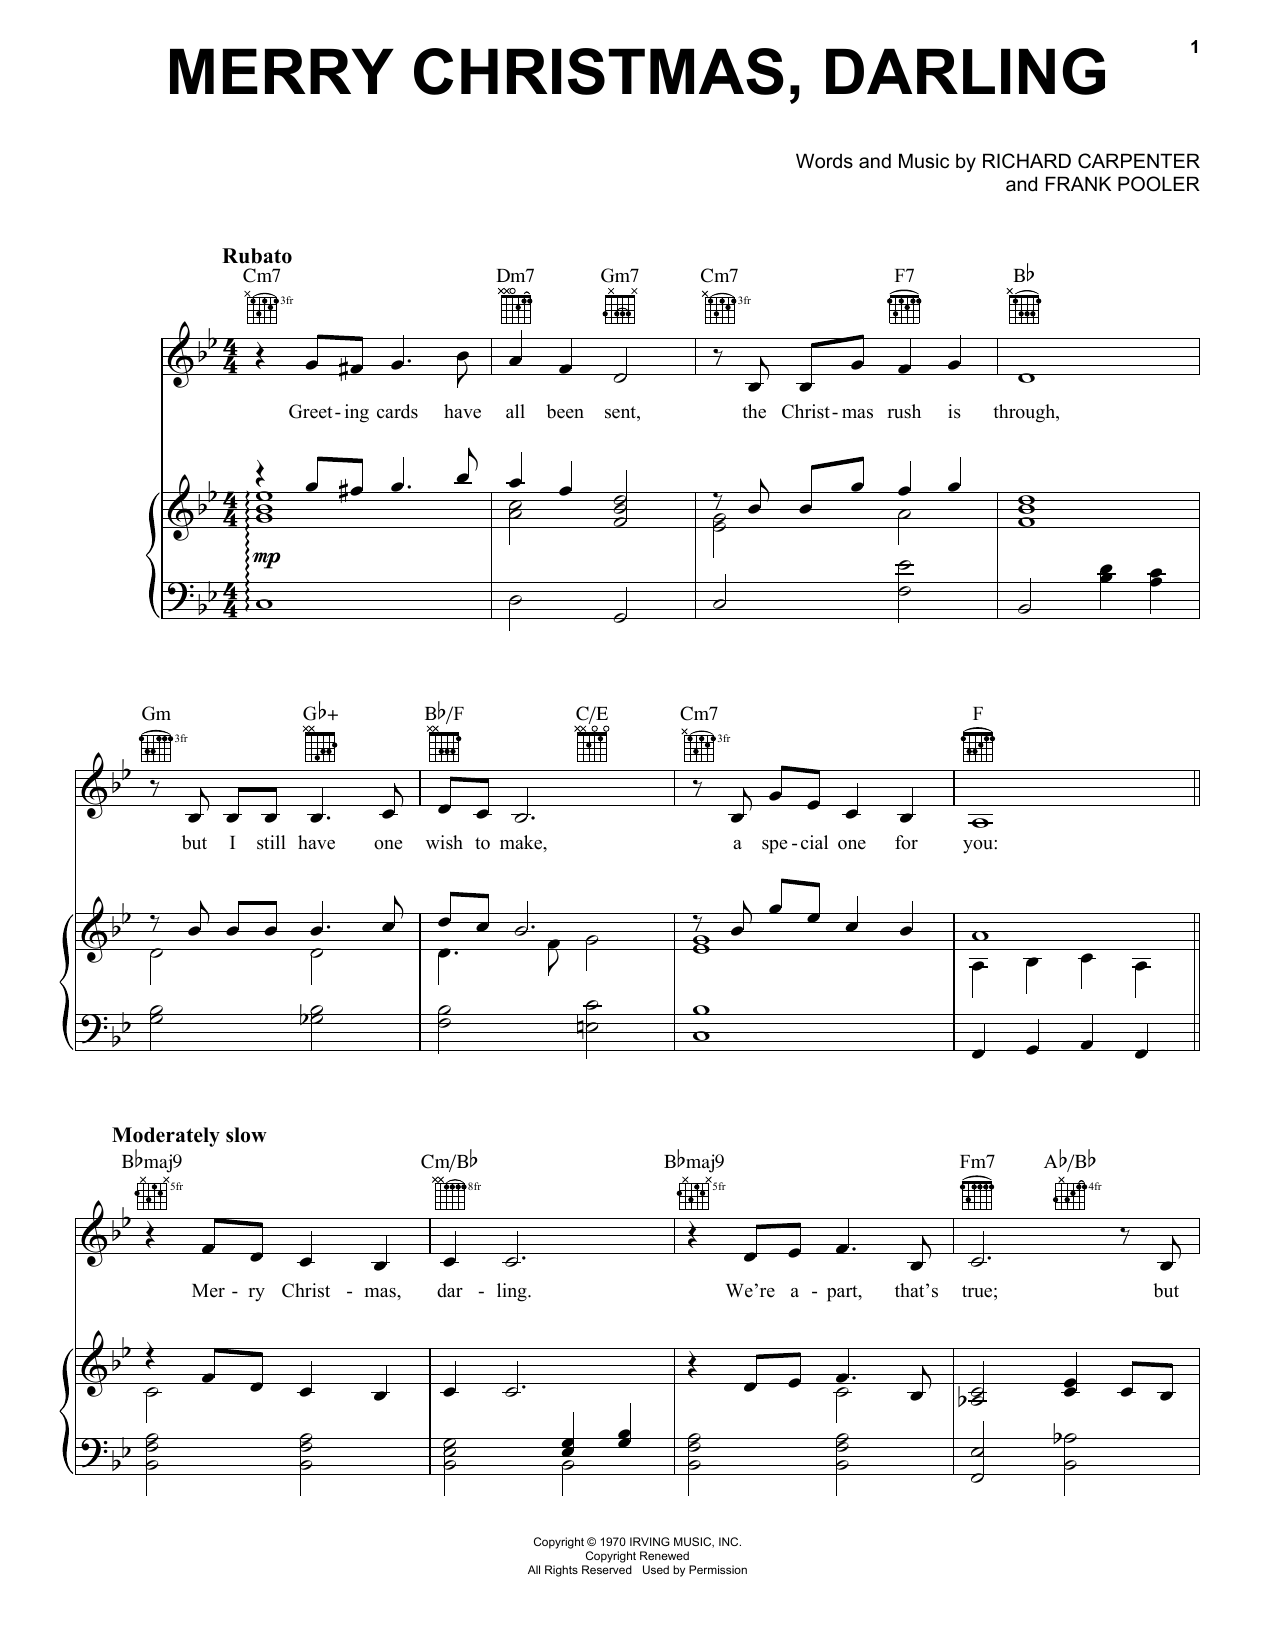 Carpenters Merry Christmas, Darling sheet music preview music notes and score for Guitar Tab including 4 page(s)